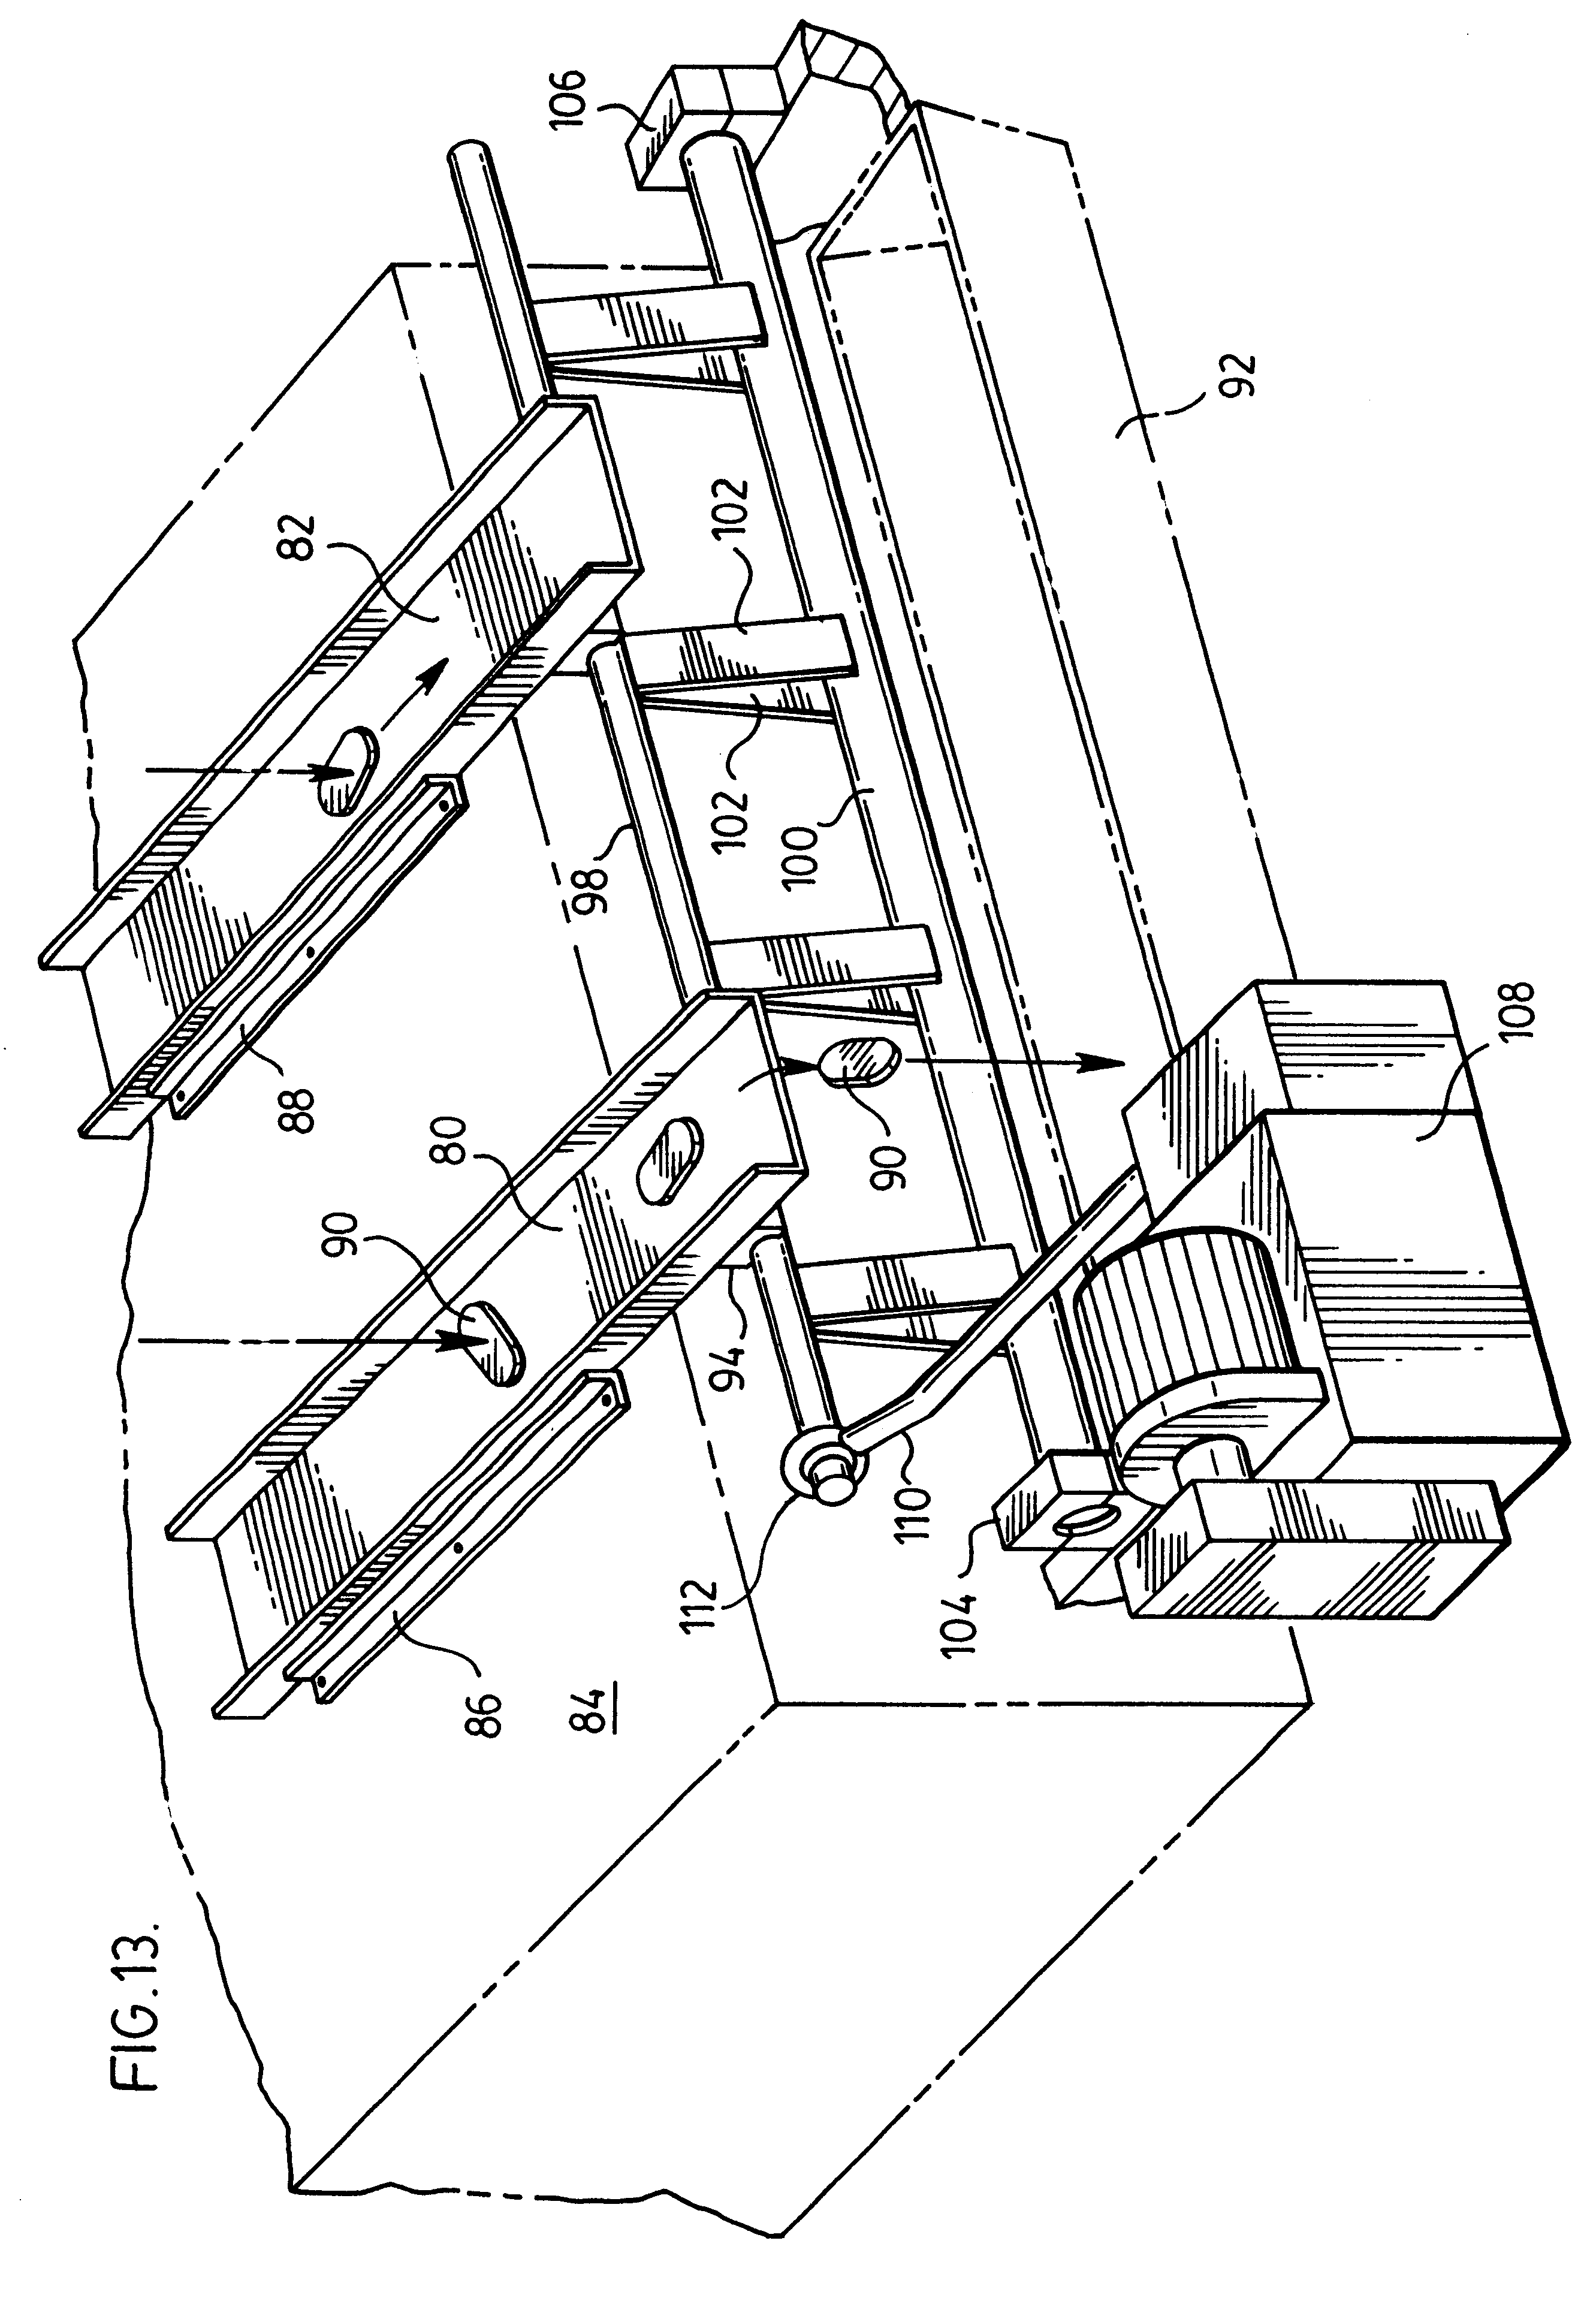 A2ba04d Fuse Box Diagram For A 2003 Vw Jetta 1 8t Wiring Library